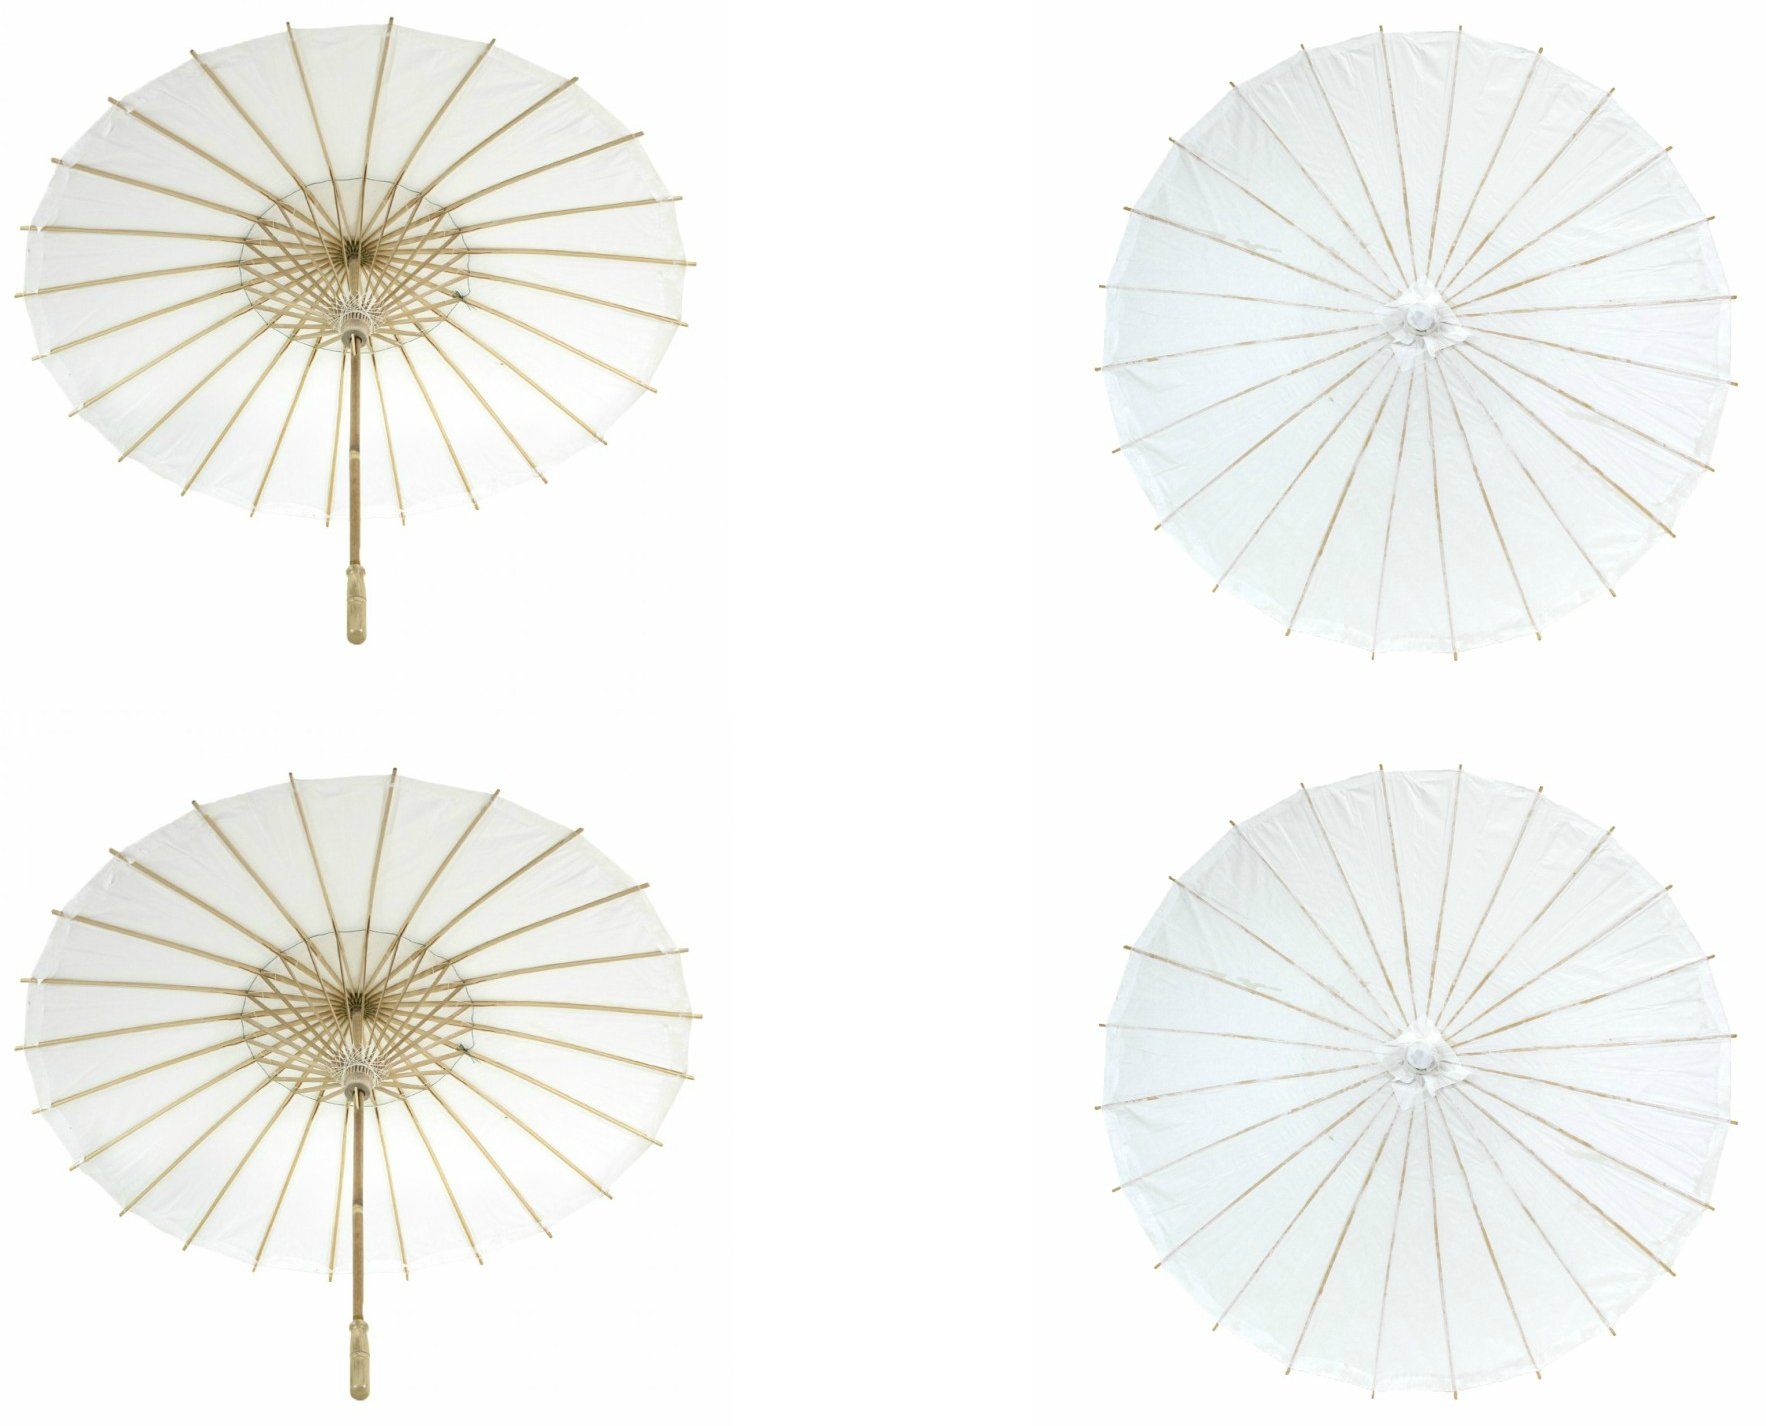 Koyal Wholesale 32-Inch Paper Parasol, 4-Pack Umbrella for Wedding, Bridesmaids, Party Favors, Summer Sun Shade (4, White)